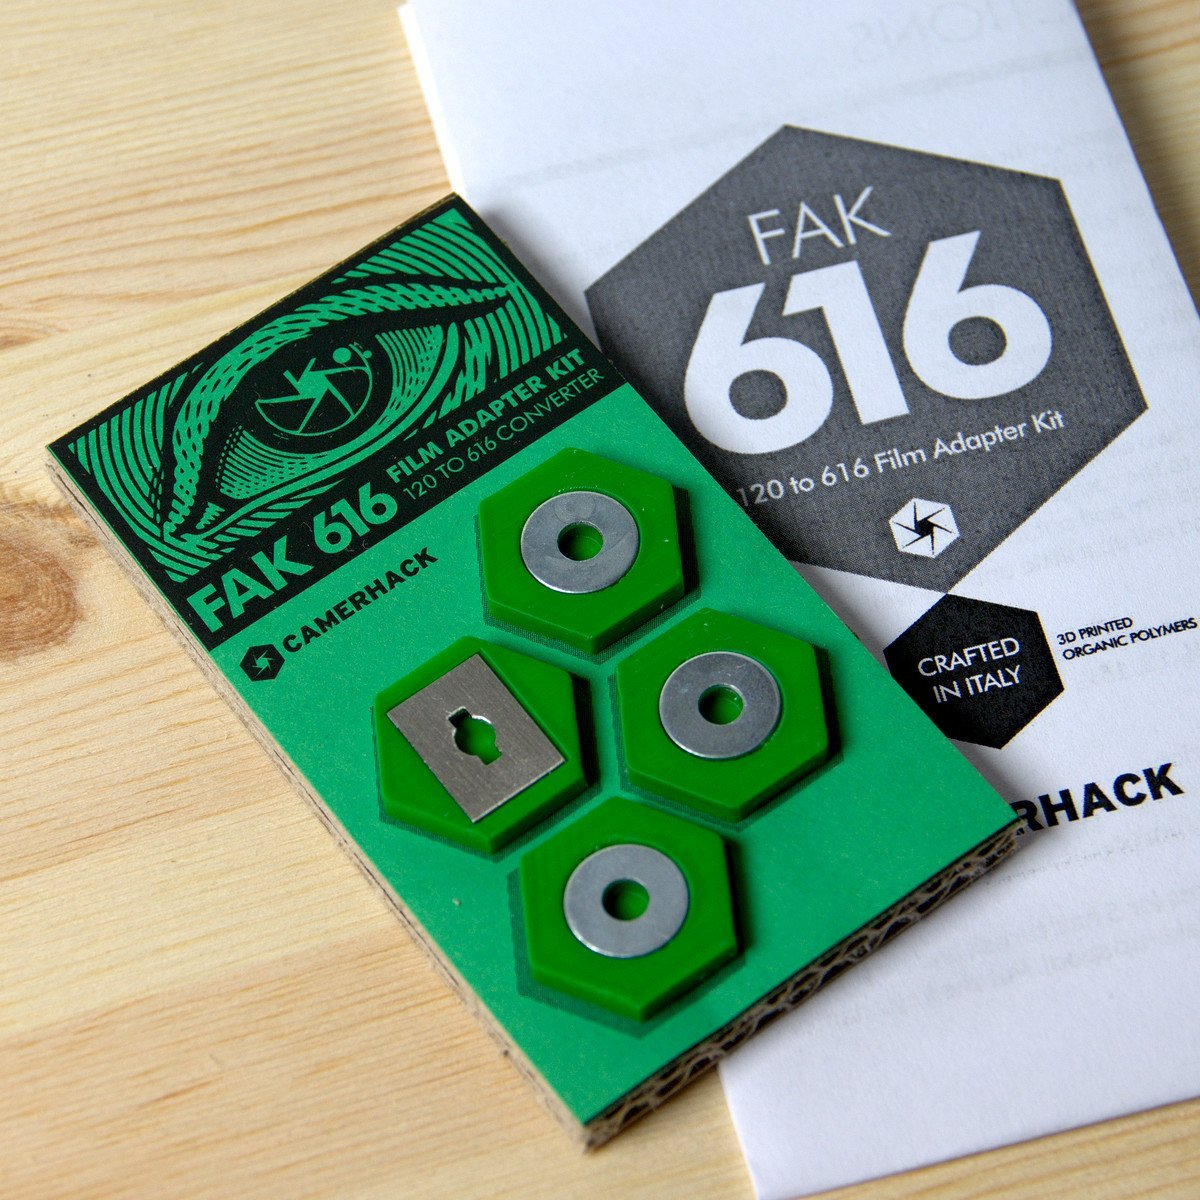 Camerhack Adapter for 616 Film Cameras: FAK616 - Analogue Wonderland